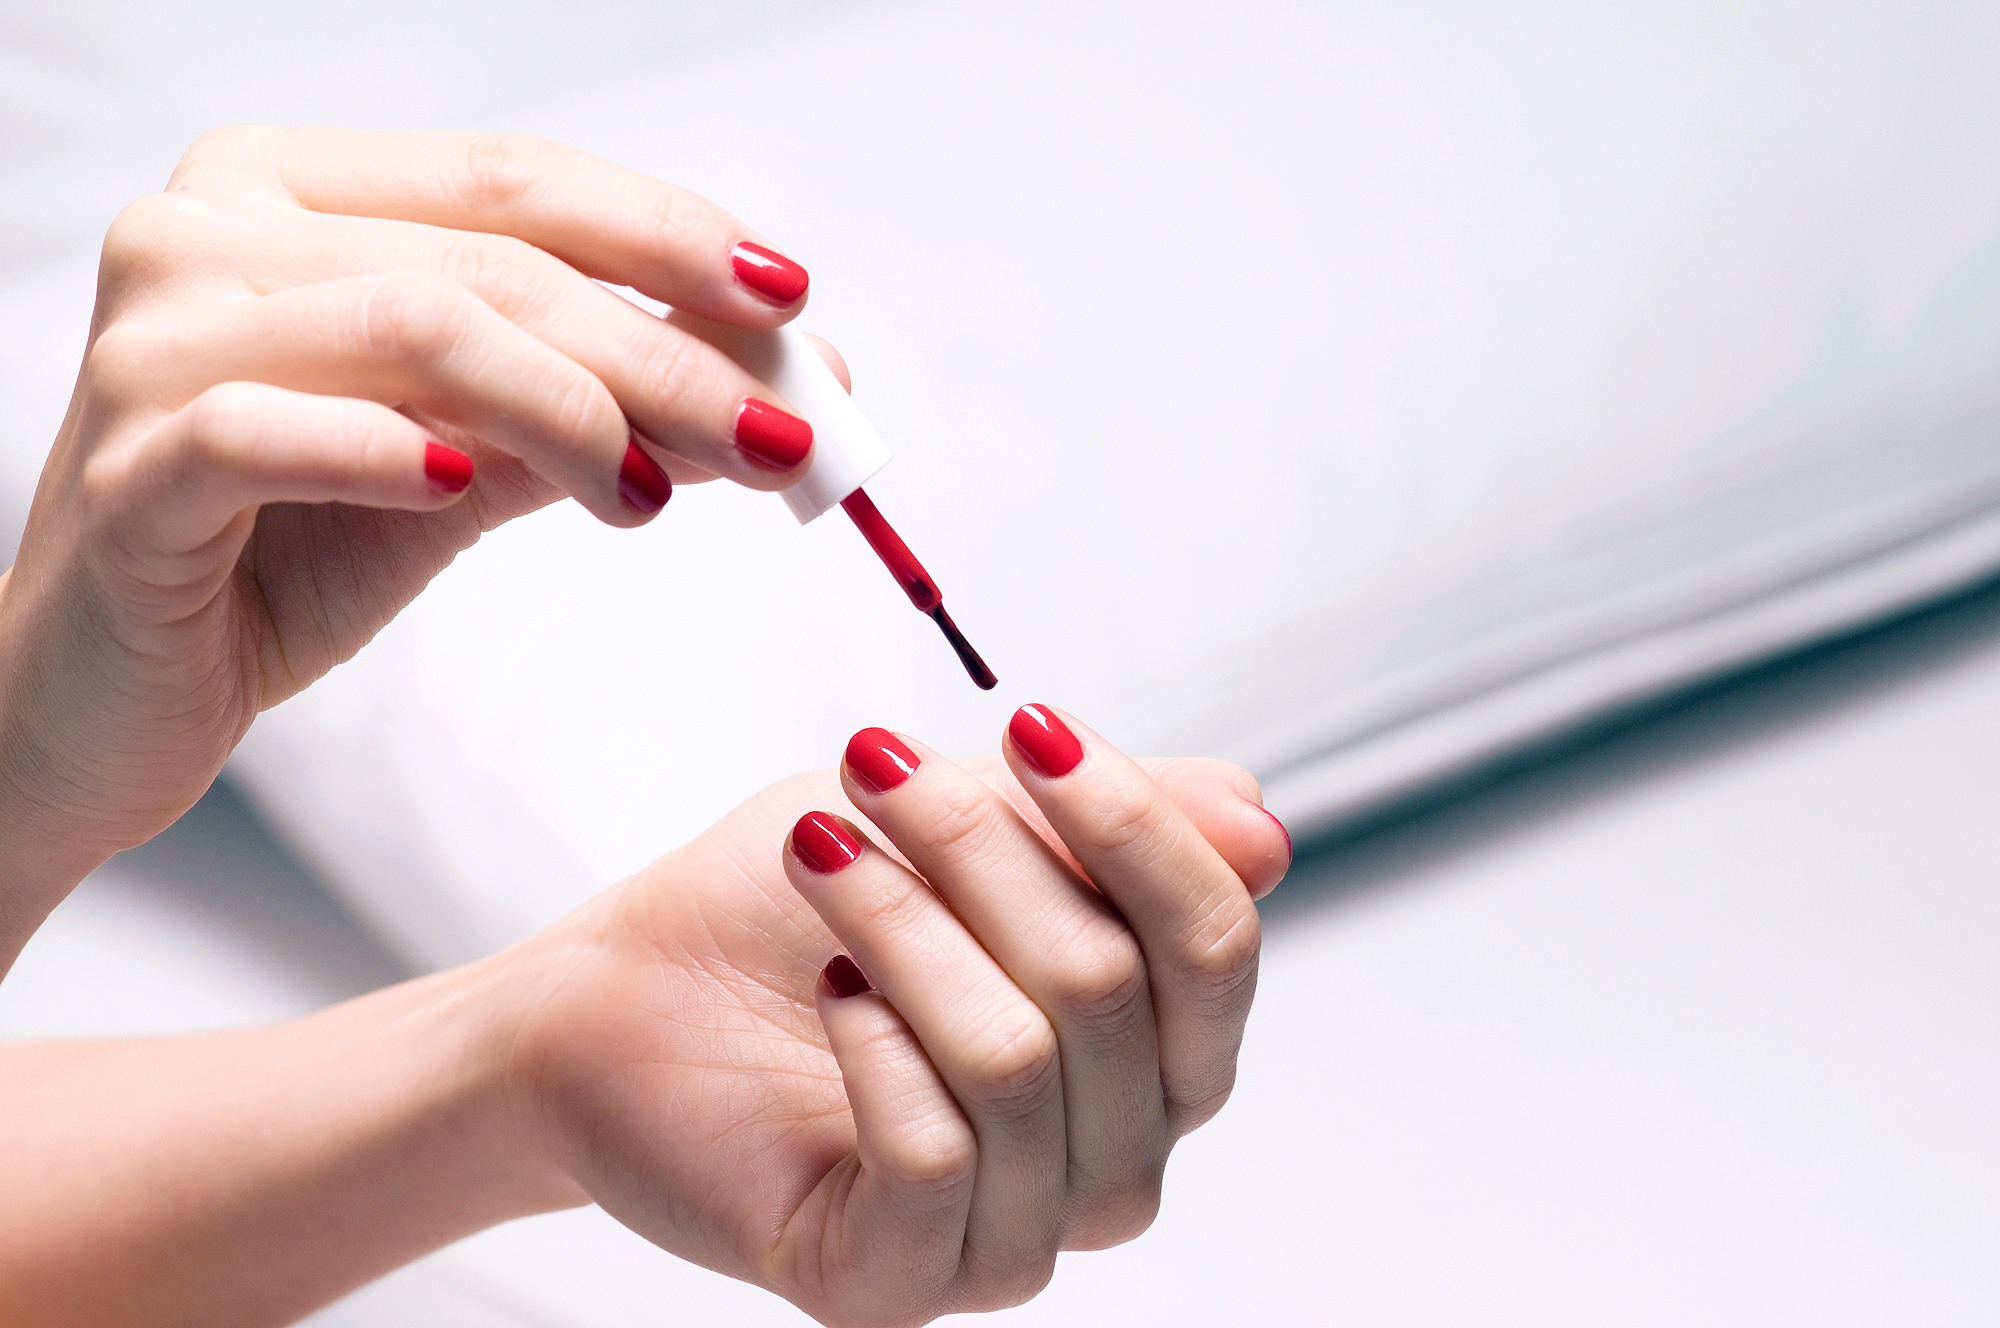 How to Dry Nail Polish Fast and Without Smudges